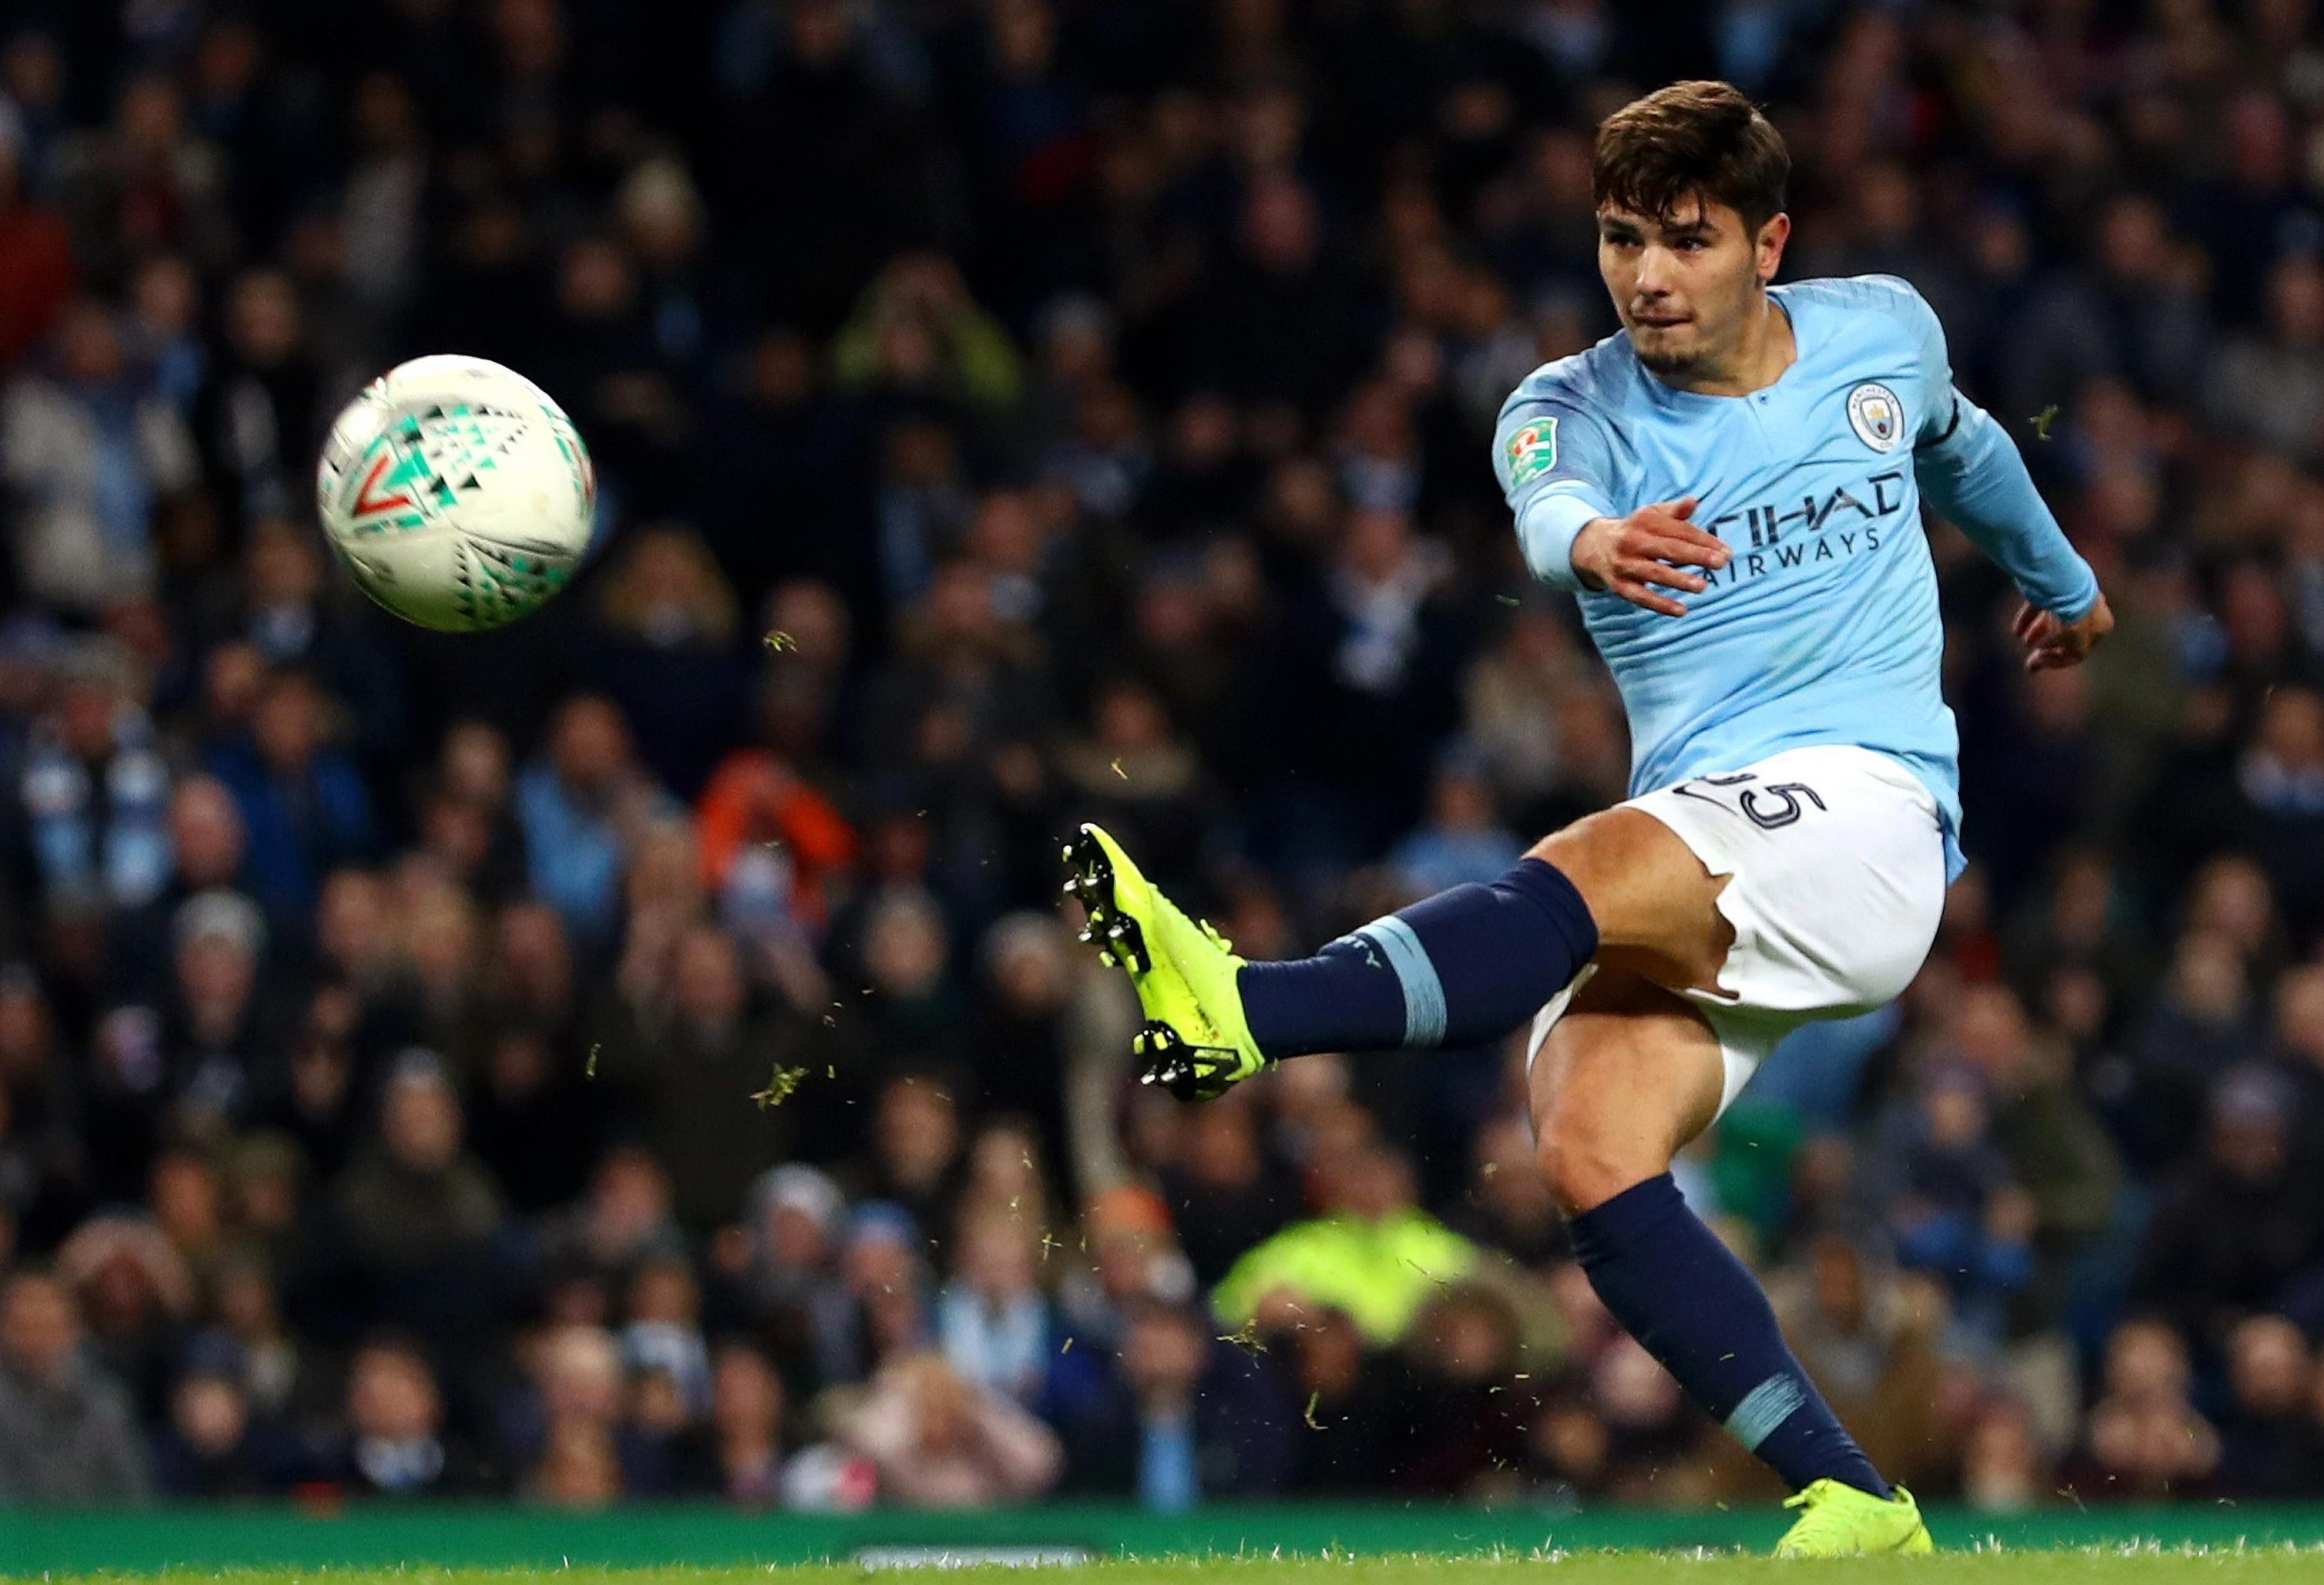 Diaz is highly rated at City